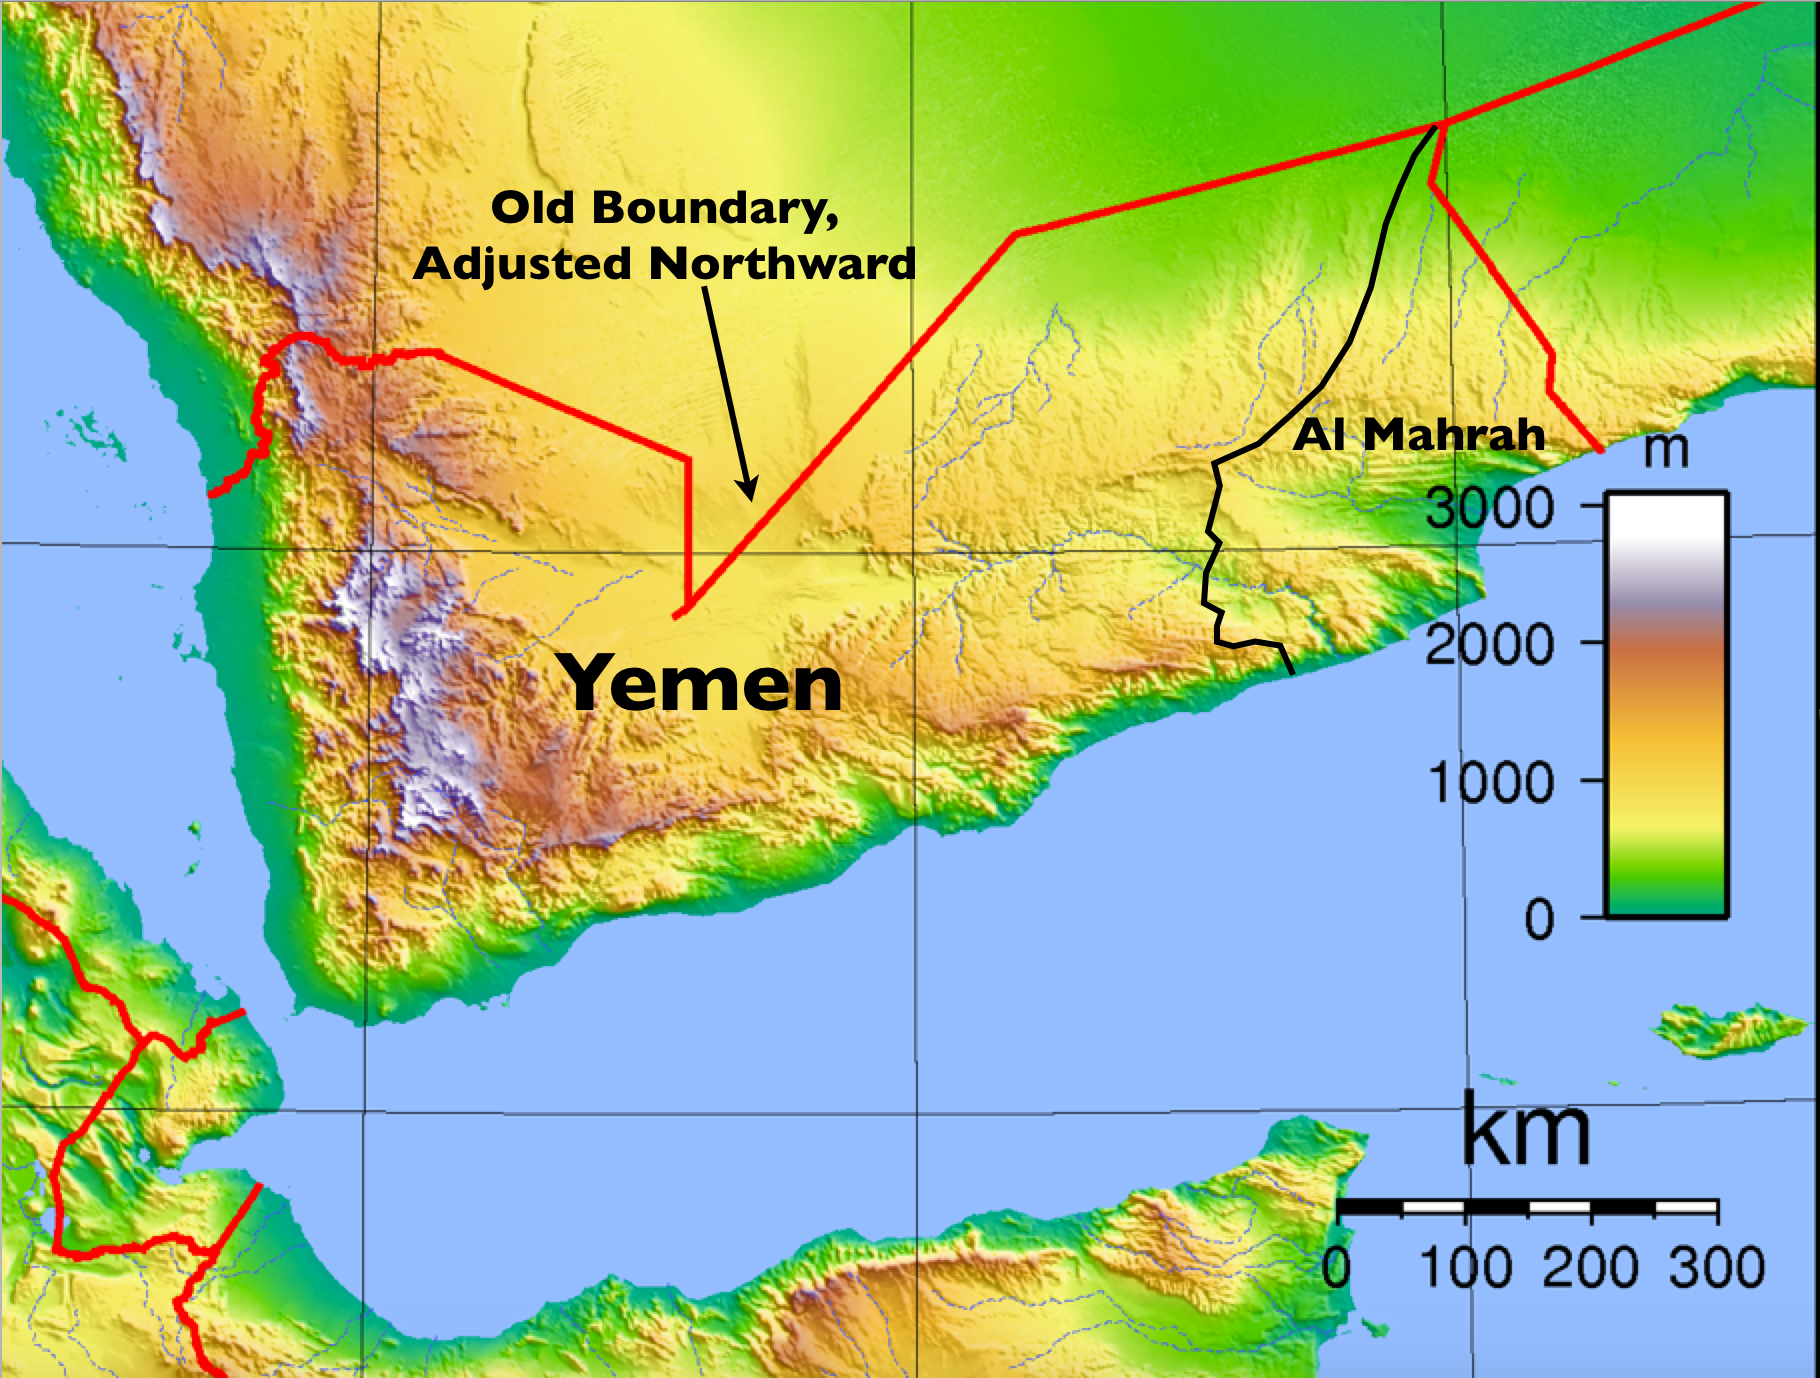 Yemen's Beleaguered Al Mahrah Seeks Autonomy on map of russia districts, map of japan districts, map of bhutan districts, map of spain districts, map of guatemala districts, map of cambodia districts, map of ireland districts, map of tajikistan districts, map of iraq districts, map of lesotho districts, map of pakistan districts, map of bangladesh districts, map of monaco districts, map of panama districts, map of germany districts, map of france districts, map of mexico districts, map of afghanistan districts, map of puerto rico districts, map of malawi districts,